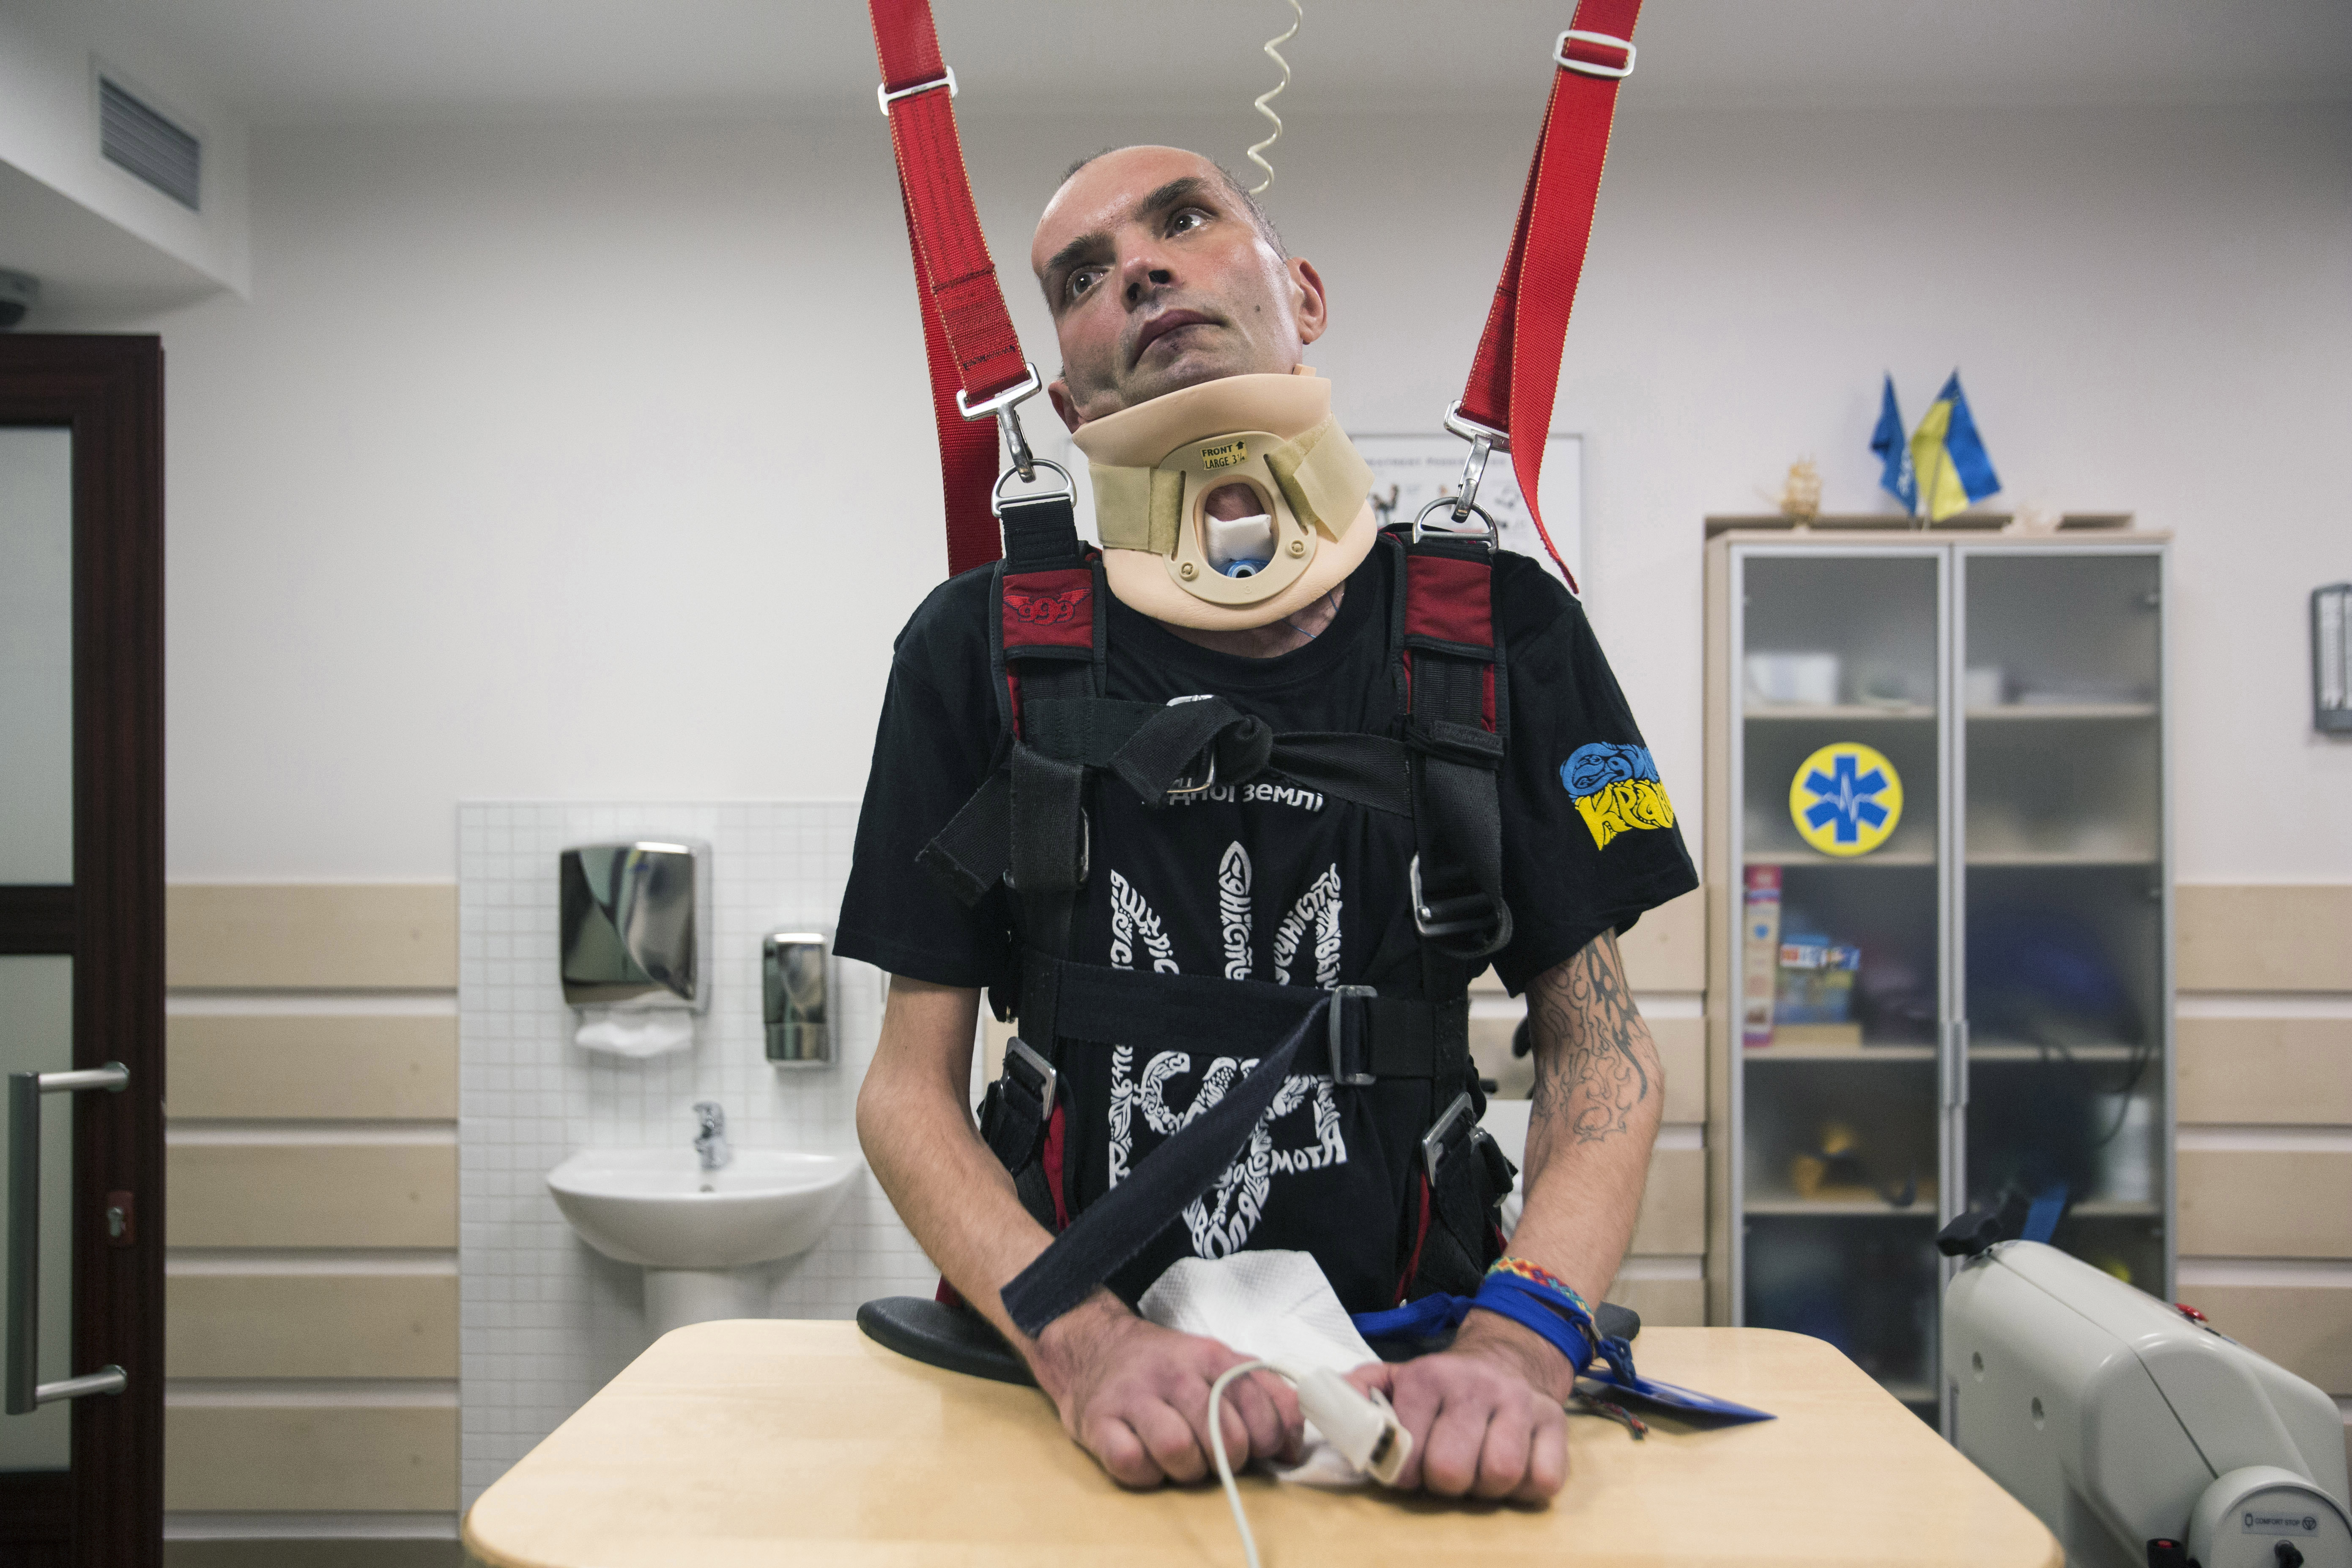 """Roman Kubishkin, a 41-year-old construction worker, is fastened and raised into a vertical position to simulate his feeling of space and balance at a rehabilitation center in Brovary, Ukraine, July 28, 2015. This helps stimulate his brain to begin communicating with his body. He breathes through a tube in his neck and is fed through another tube that carries food directly into his stomach. Kubishkin had joined the right-wing coalition Right Sector and was based in Pisky, a village near the remains of Donetsk International Airport, when shells fired by separatist forces nearly killed him on Jan. 22, 2015. His fellow soldiers thought he was dead due to a severe head trauma, in which Kubishkin lost much of the right side of his brain. """"Sixteen clinics refused to take Roman because he was in such difficult condition. Nodus was the only one,"""" said his mother, Iryna, referring to the modern neurological and neurosurgical rehabilitation center in Brovary, outside Kiev. His monthly care costs about $3,000 to $3,300, which is largely funded by donations and volunteers."""